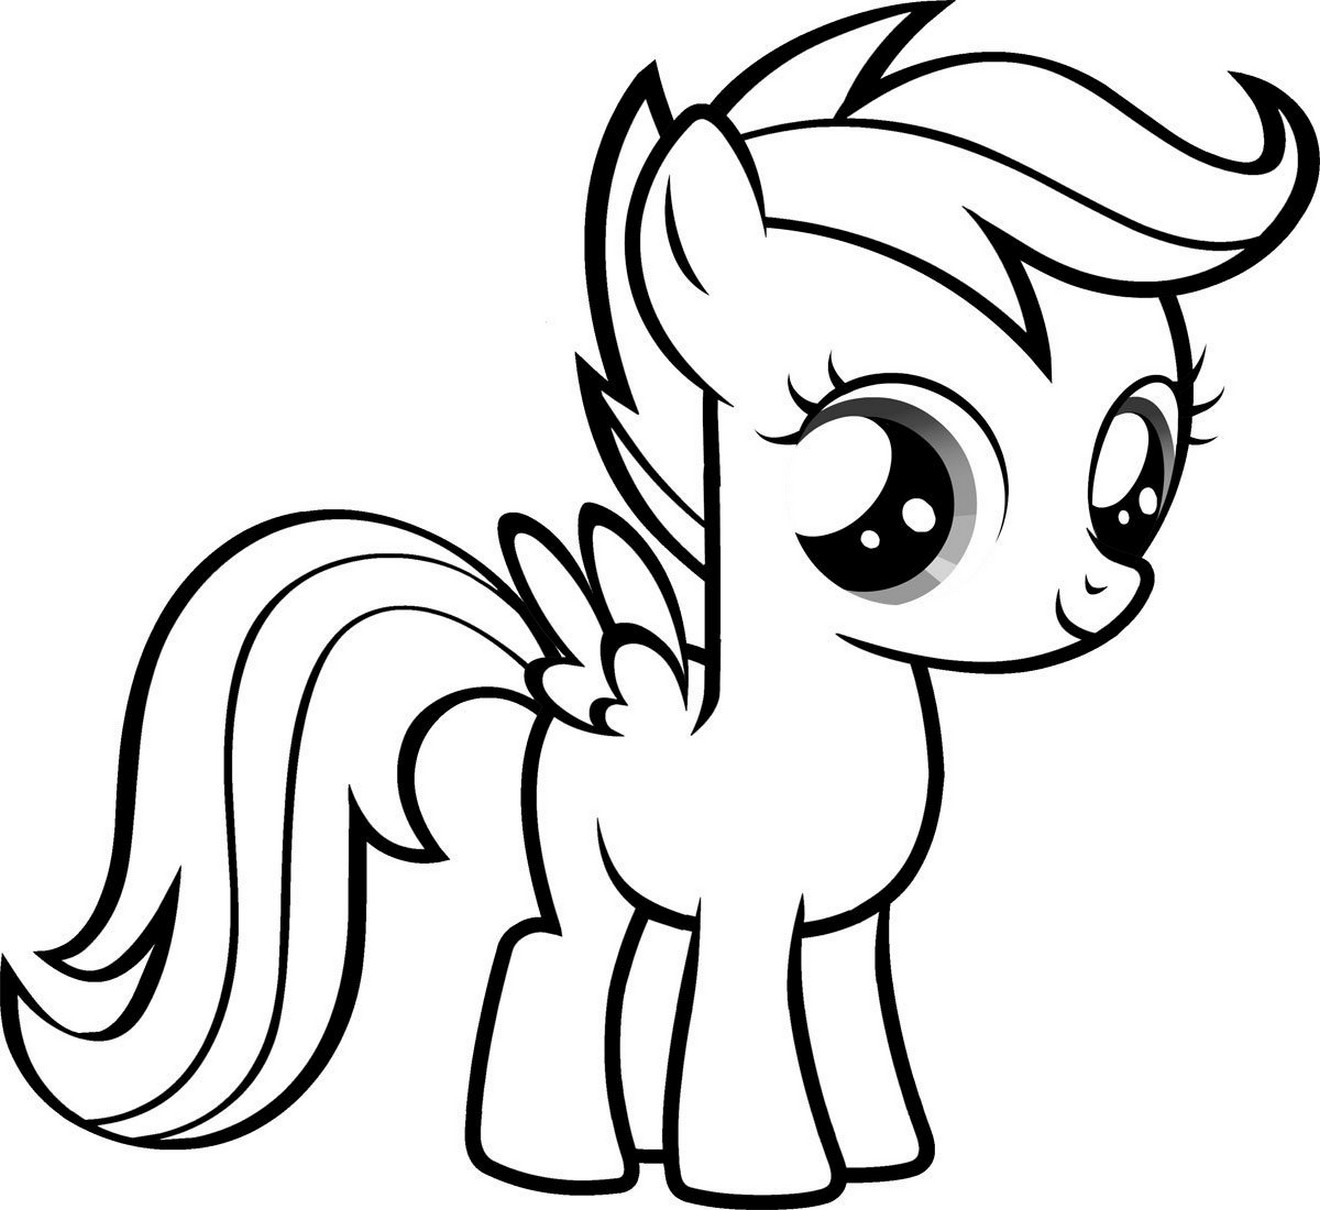 cartoon coloring cartoon network coloring pages download and print for free cartoon coloring